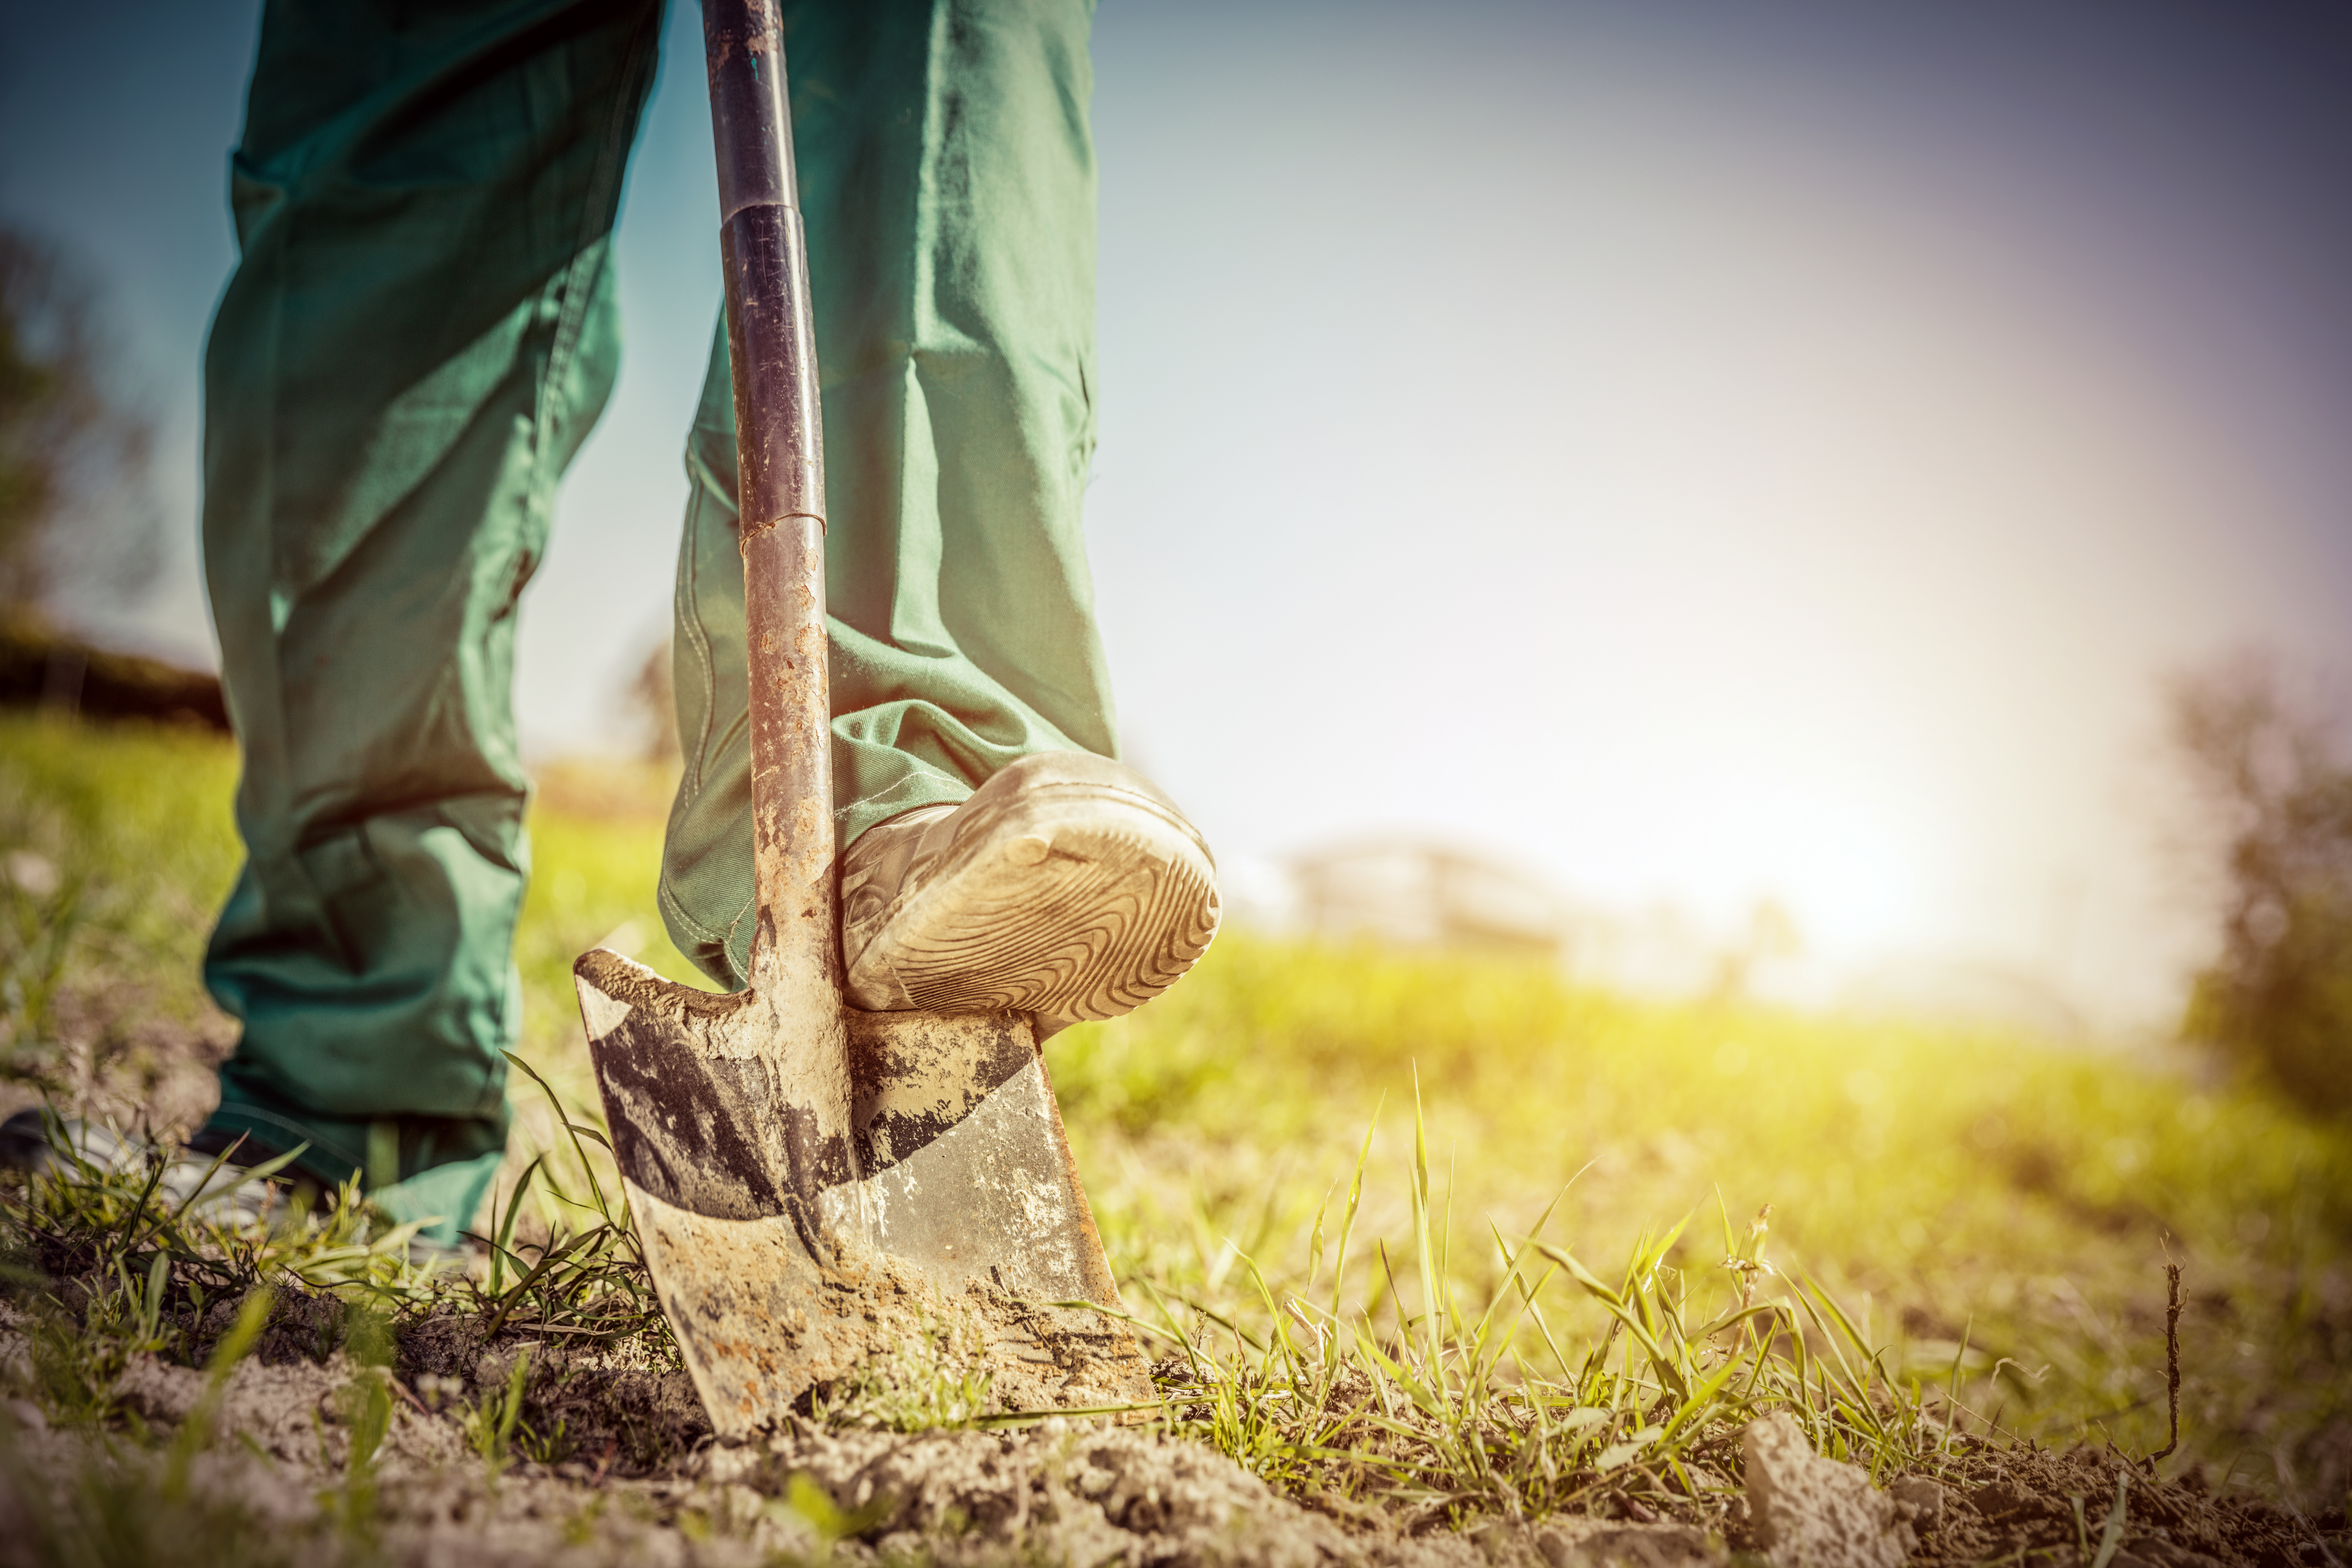 What Causes Piles of Dirt in Your Yard? | Home Guides | SF Gate